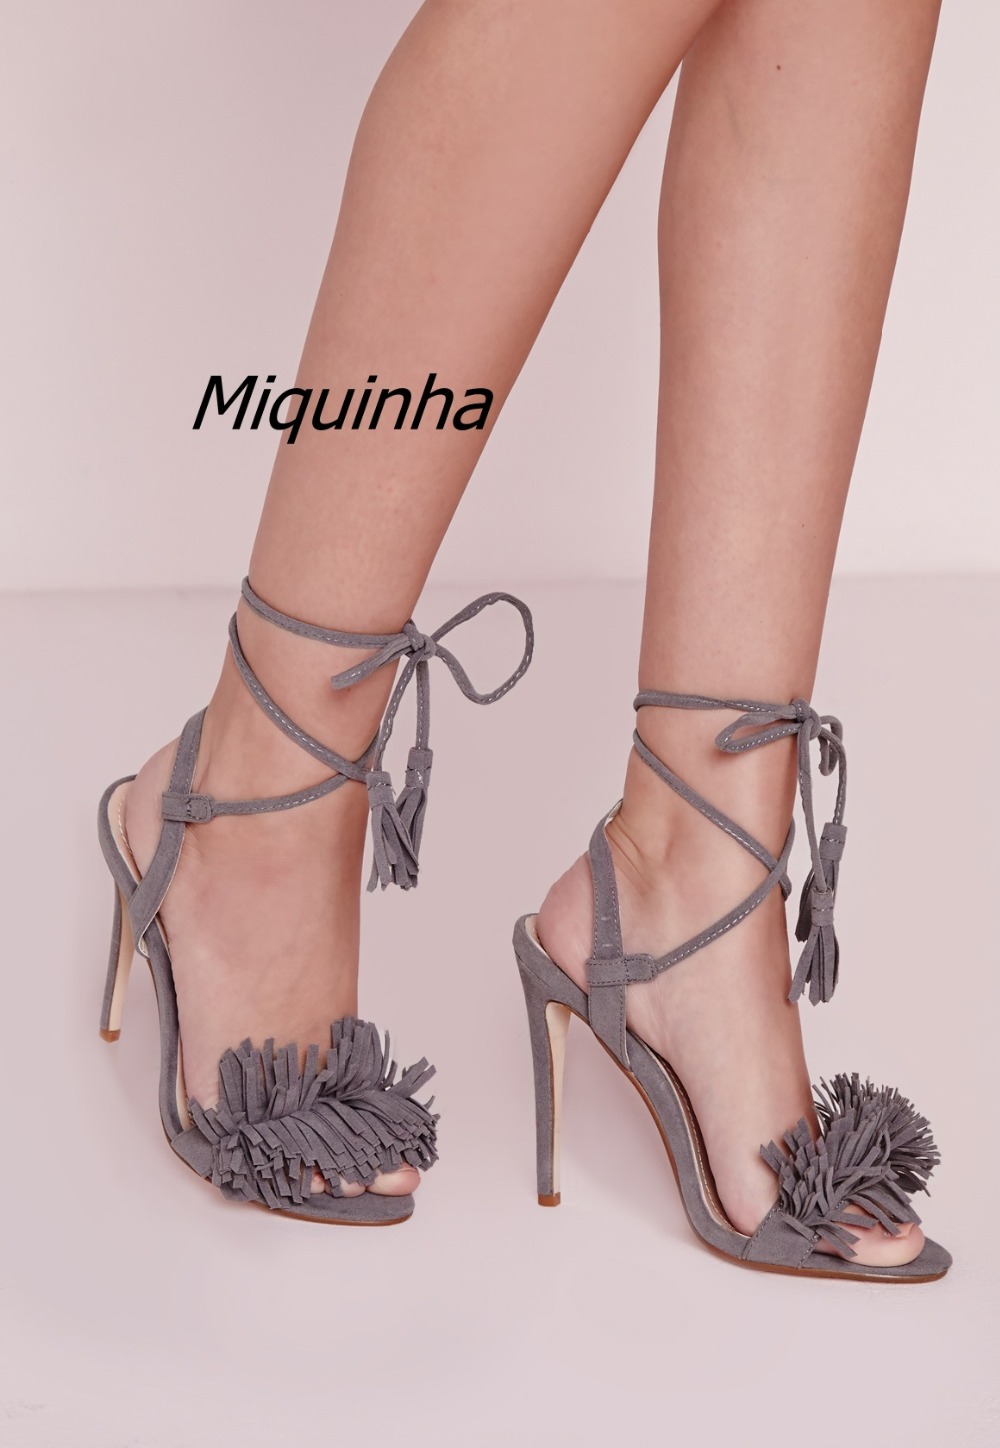 Classy Grey Suede Fringe Peep Toe Lace Up Sandals Women Sexy Slingback Cut-out Stiletto Heel Shoes Sweet Tassel Dress Sandals young girl s black suede open toe lace up ankle sandal boots stiletto heel fringe dress shoes braid embellished party shoes